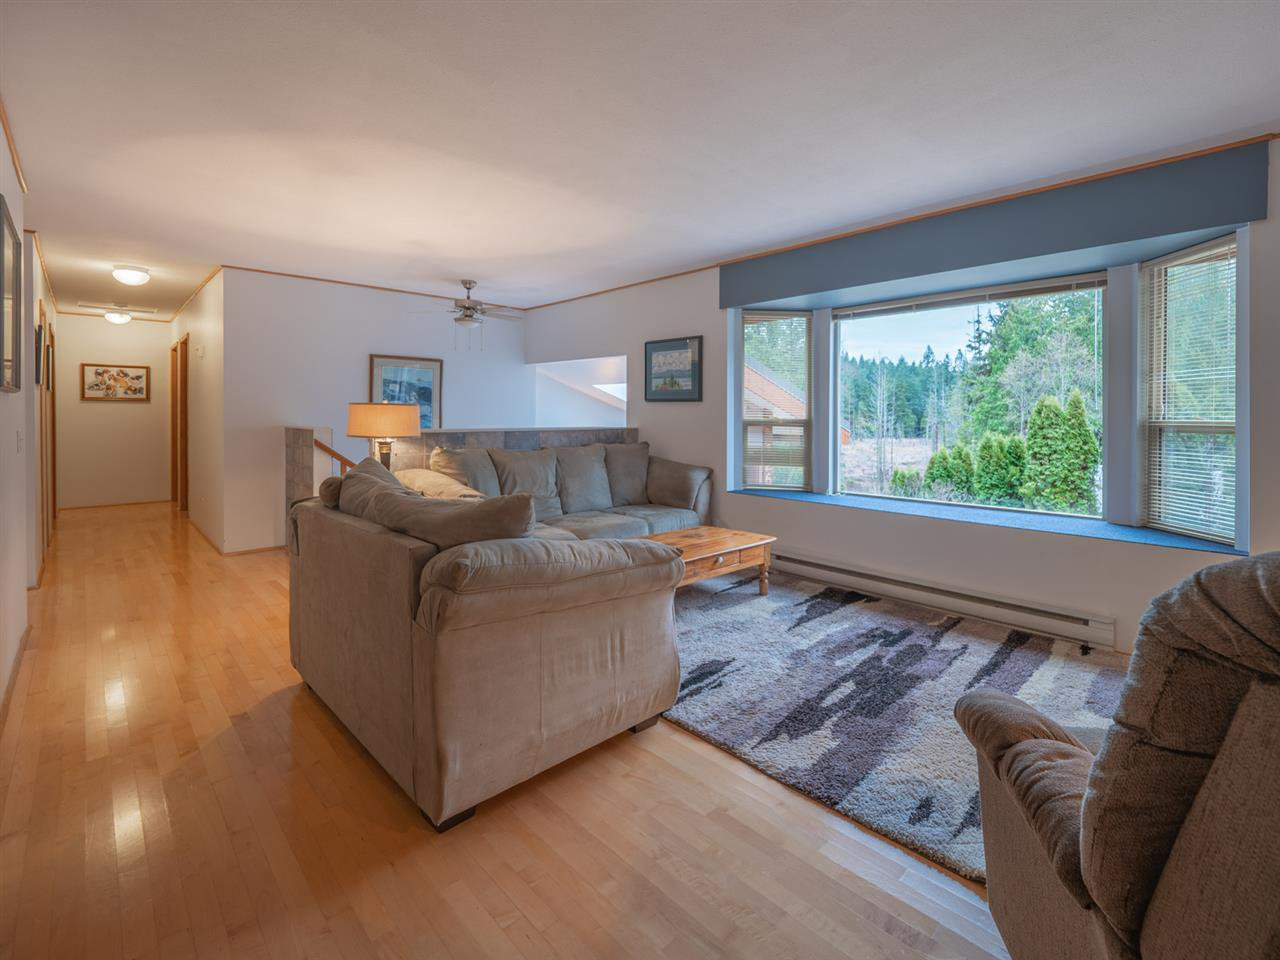 Photo 2: Photos: 12674 MERRILL Crescent in Pender Harbour: Pender Harbour Egmont House for sale (Sunshine Coast)  : MLS®# R2337589